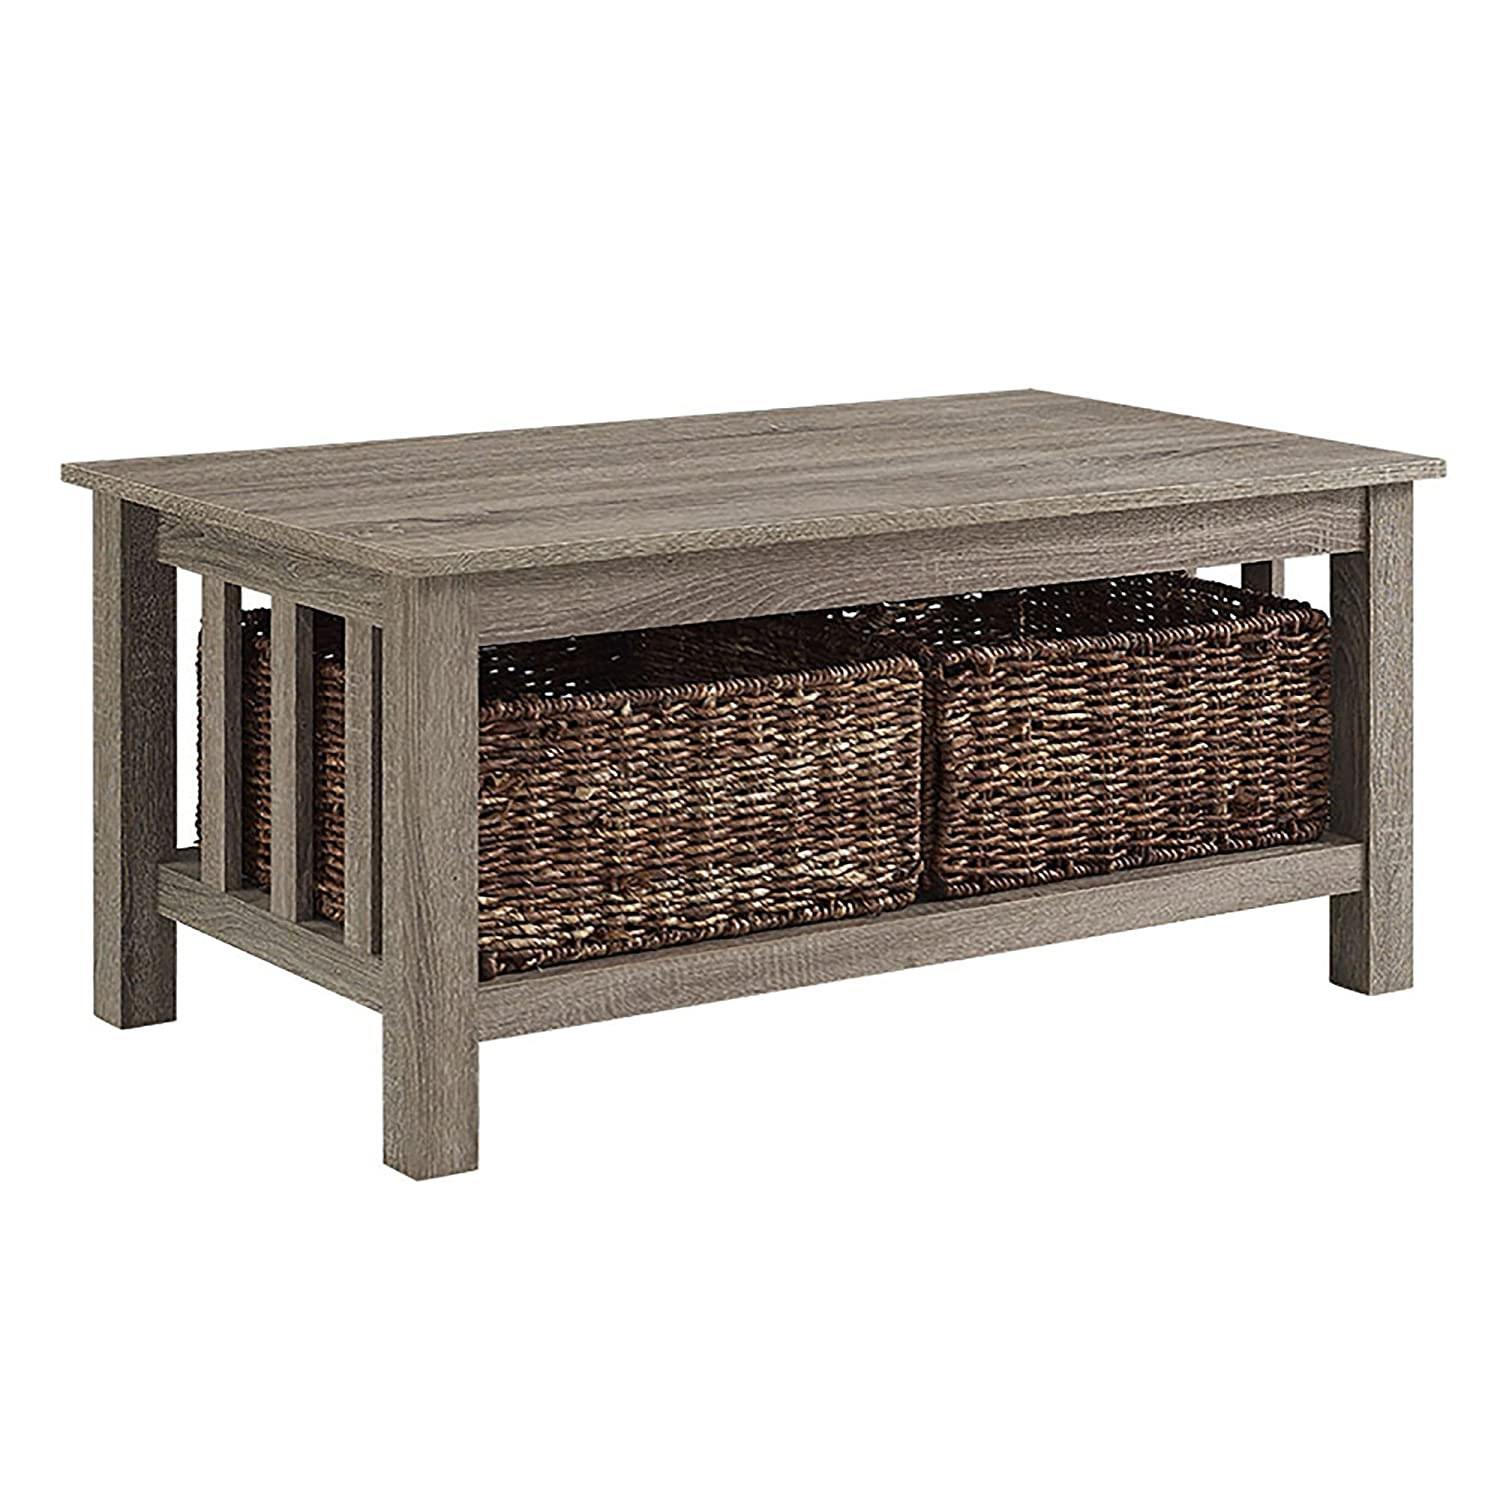 "Amazon WE Furniture 40"" Wood Storage Coffee Table with Totes"